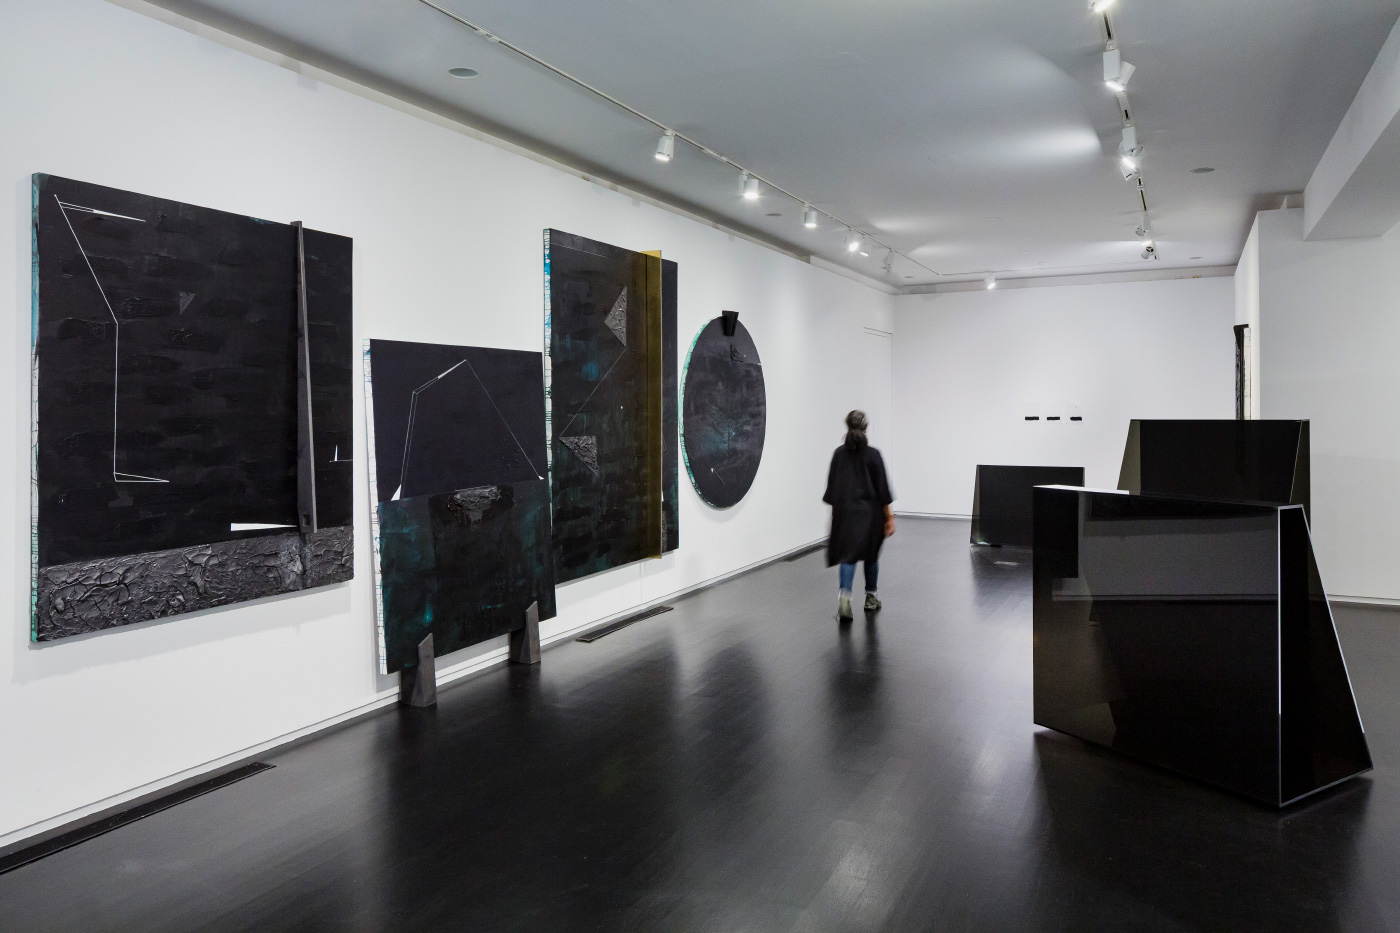 Installation view of black paintings by Torkwase Dyson on a white background